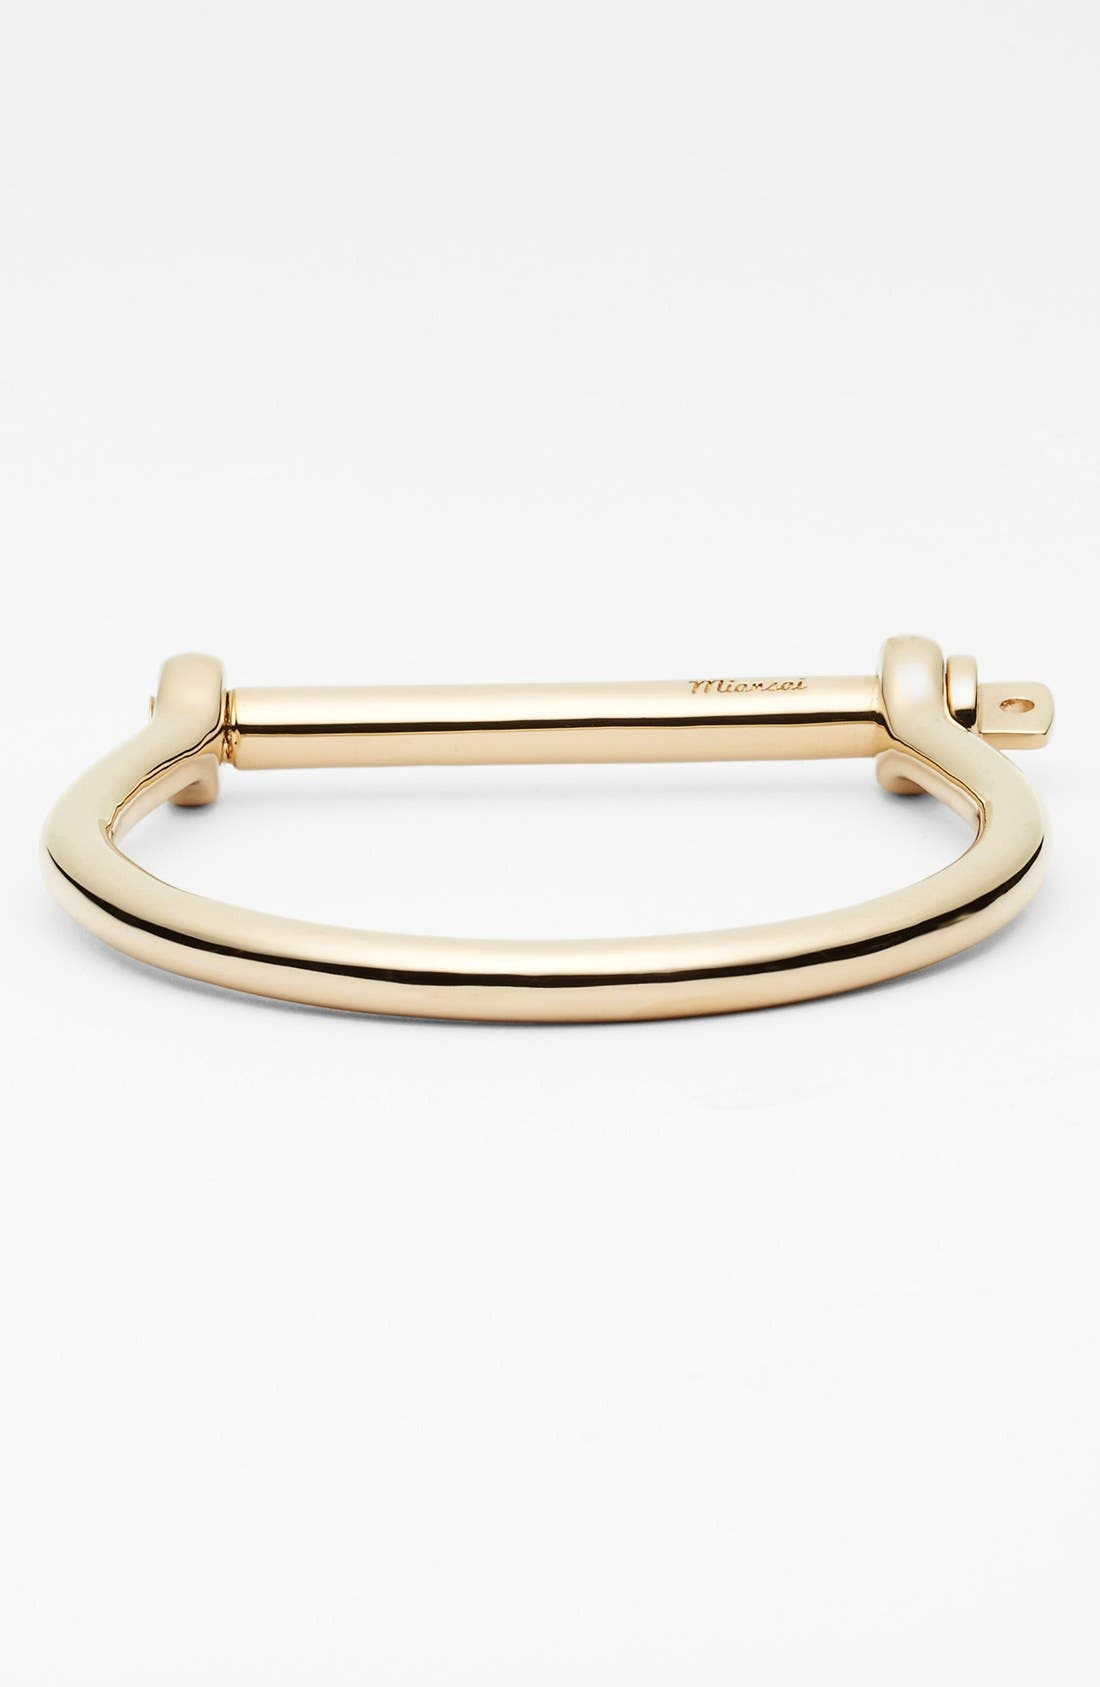 Gold Plated Screw Cuff Bracelet,                         Main,                         color, Gold Polished